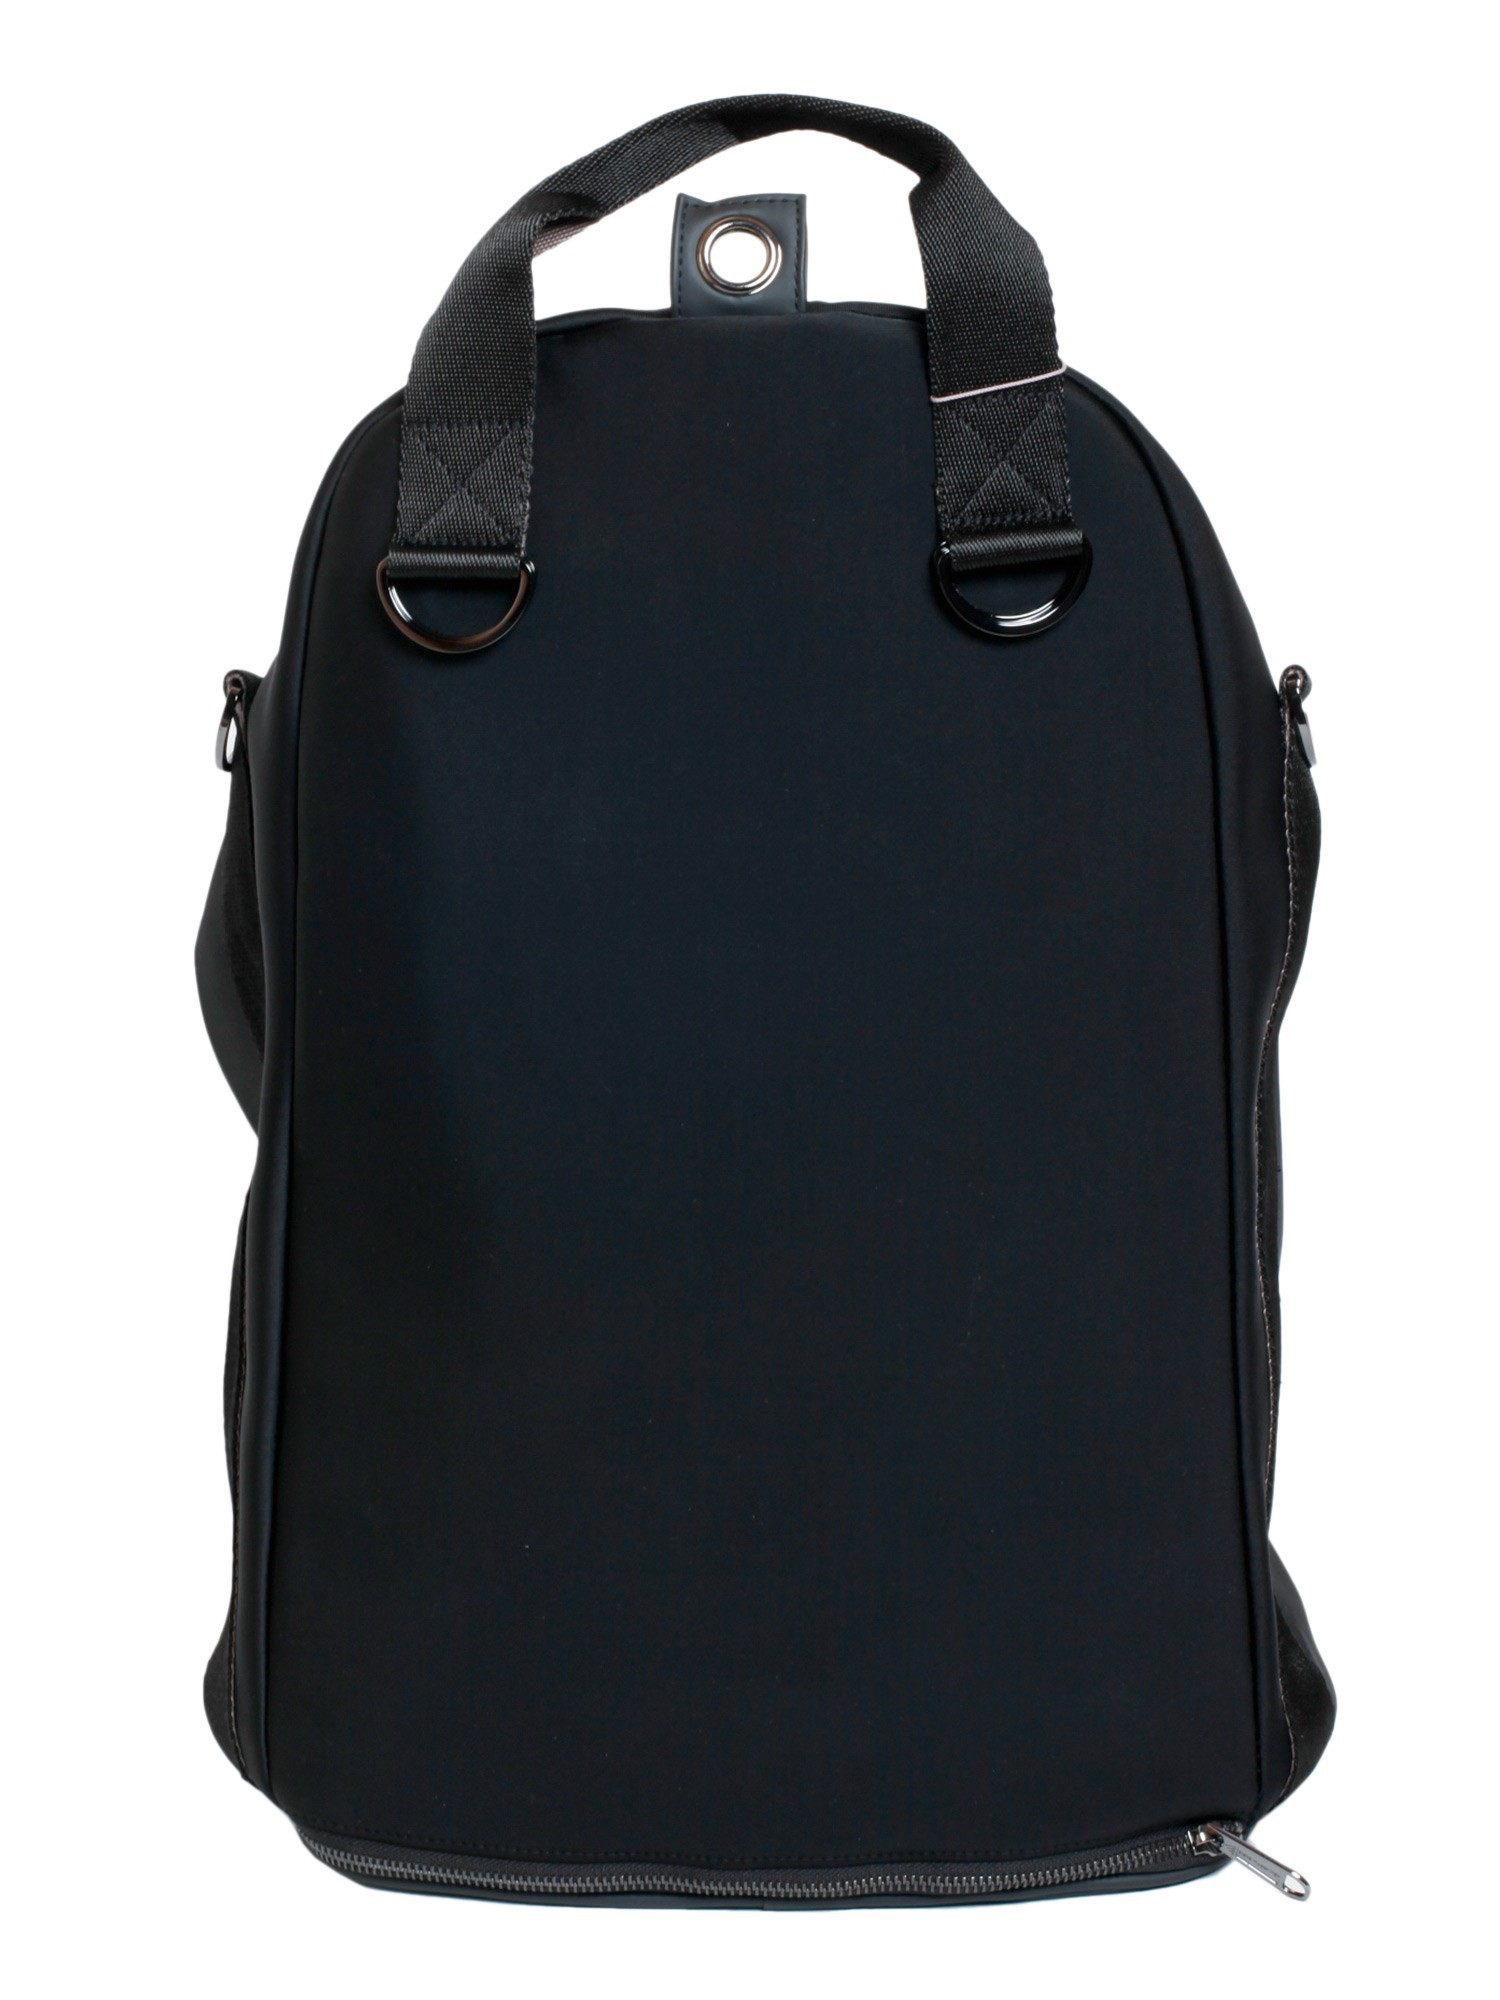 adidas by stella mccartney neoprene backpack studio in black nero lyst. Black Bedroom Furniture Sets. Home Design Ideas